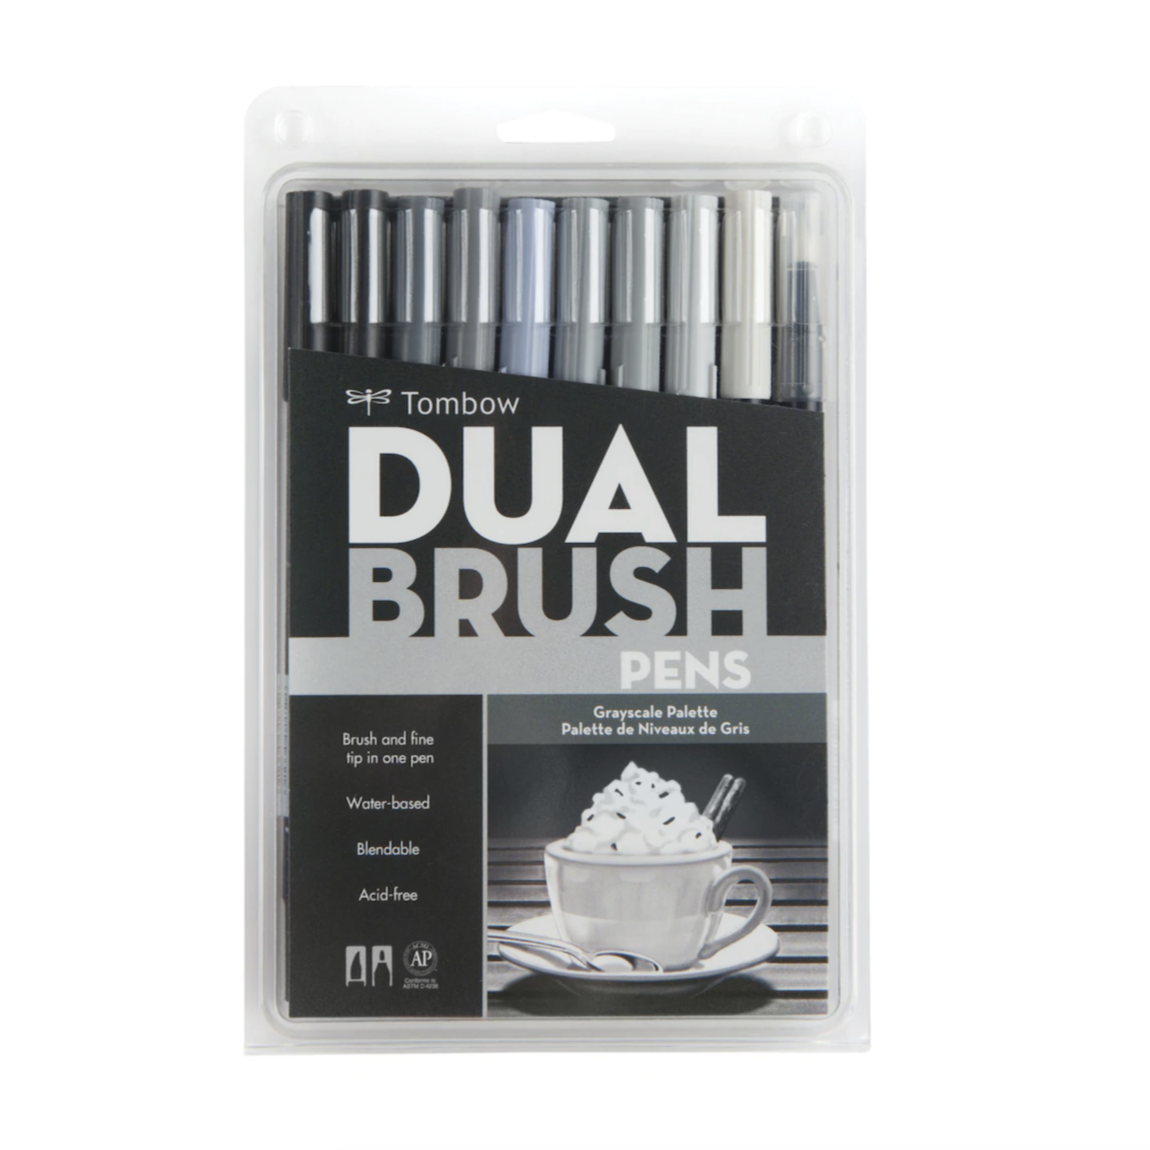 Tombow Dual Brush Pen and Artist Markers - Set of 10 - Grayscale Palette by Tombow - K. A. Artist Shop